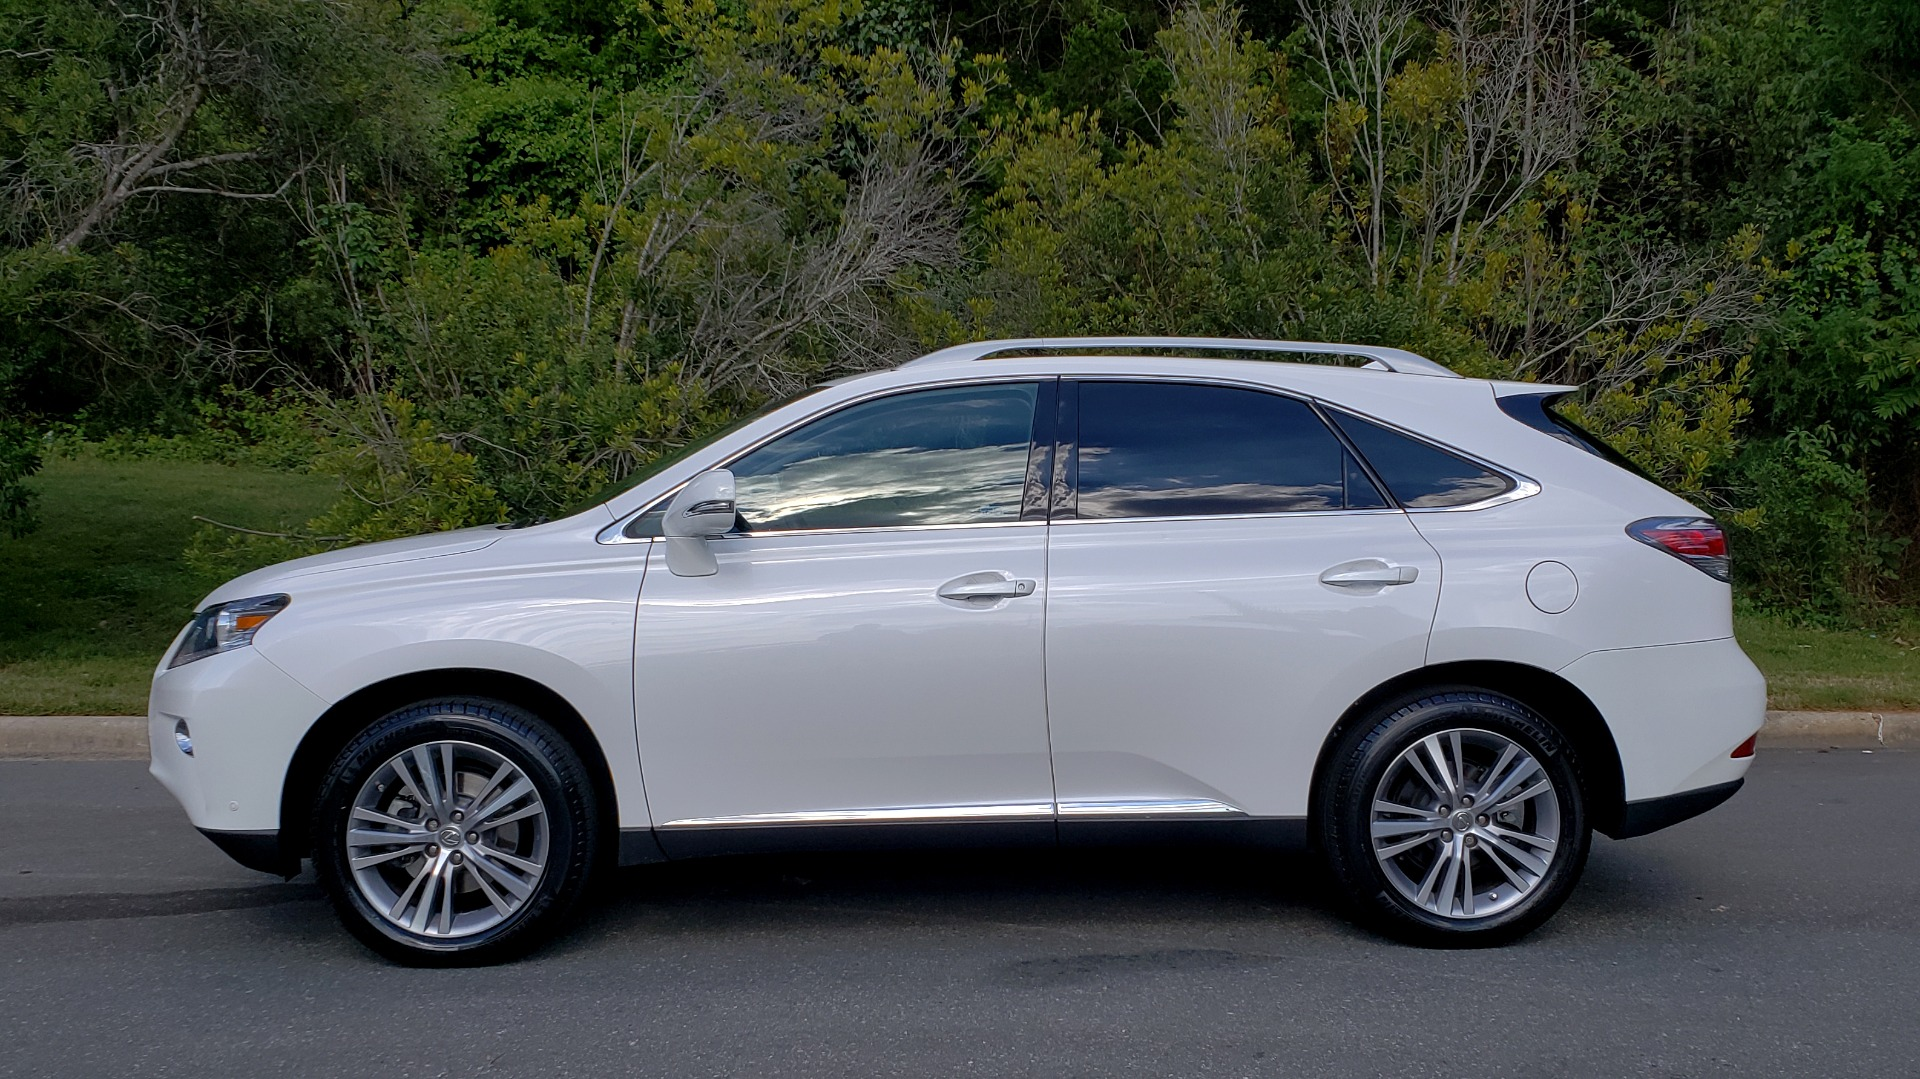 Used 2015 Lexus RX 350 PREMIUM PKG / COMFORT PKG / NAV / SUNROOF / BSM / TOWING for sale Sold at Formula Imports in Charlotte NC 28227 3